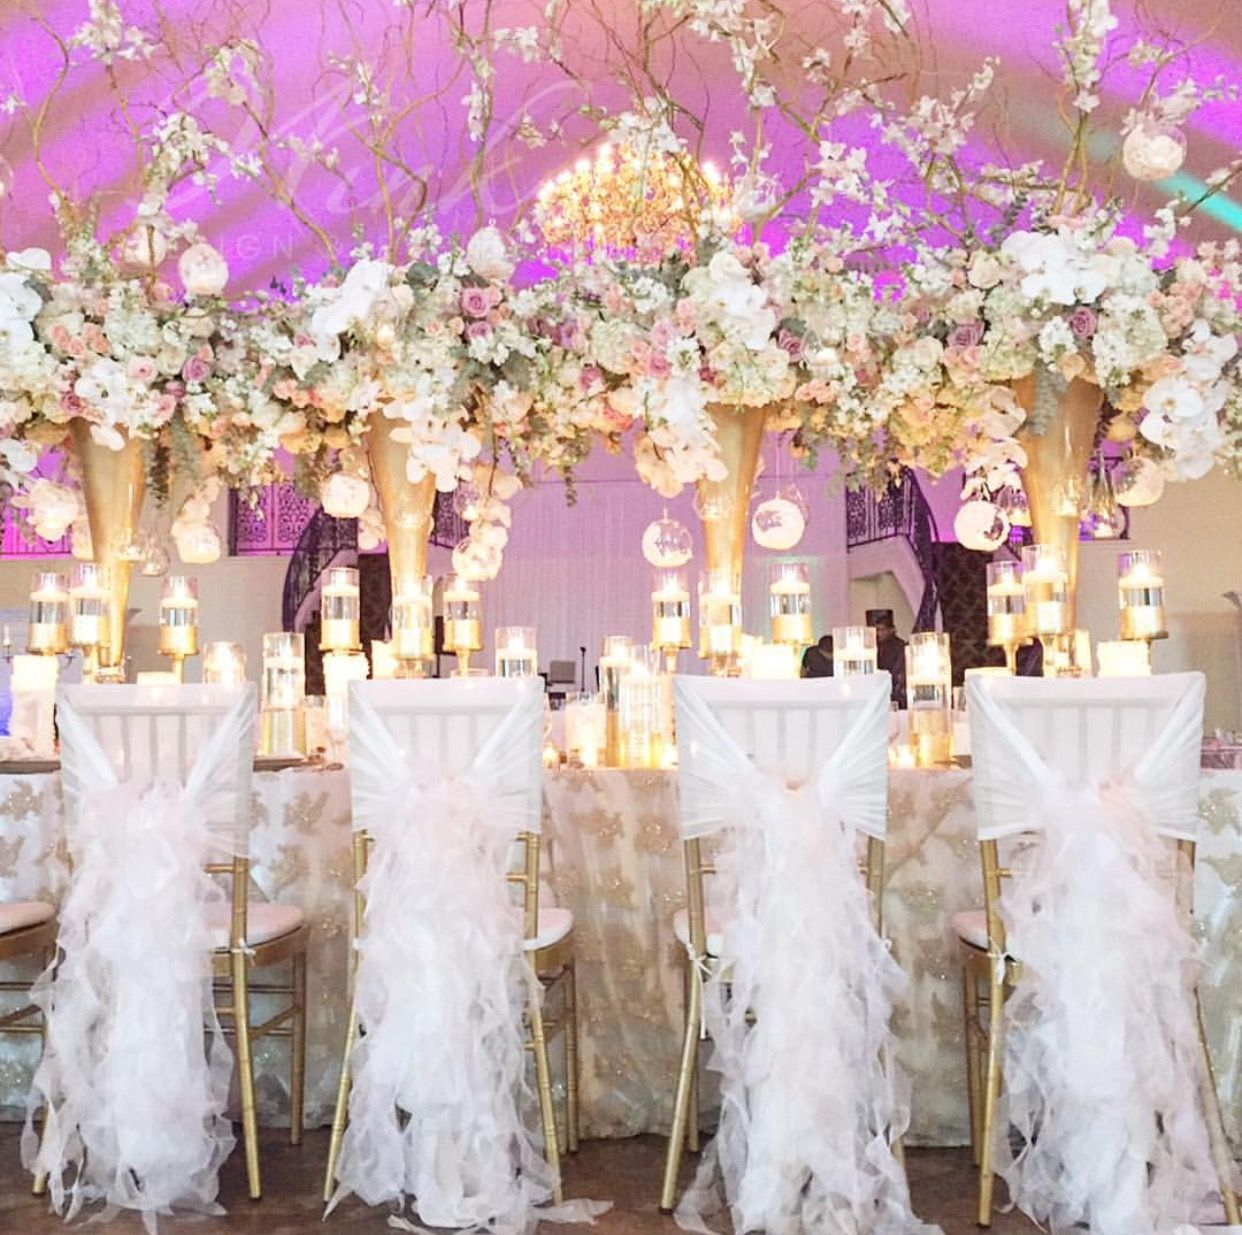 Decoracion Sillas Boda Pin De Ives Hovanessian En Tablescapes Pinterest